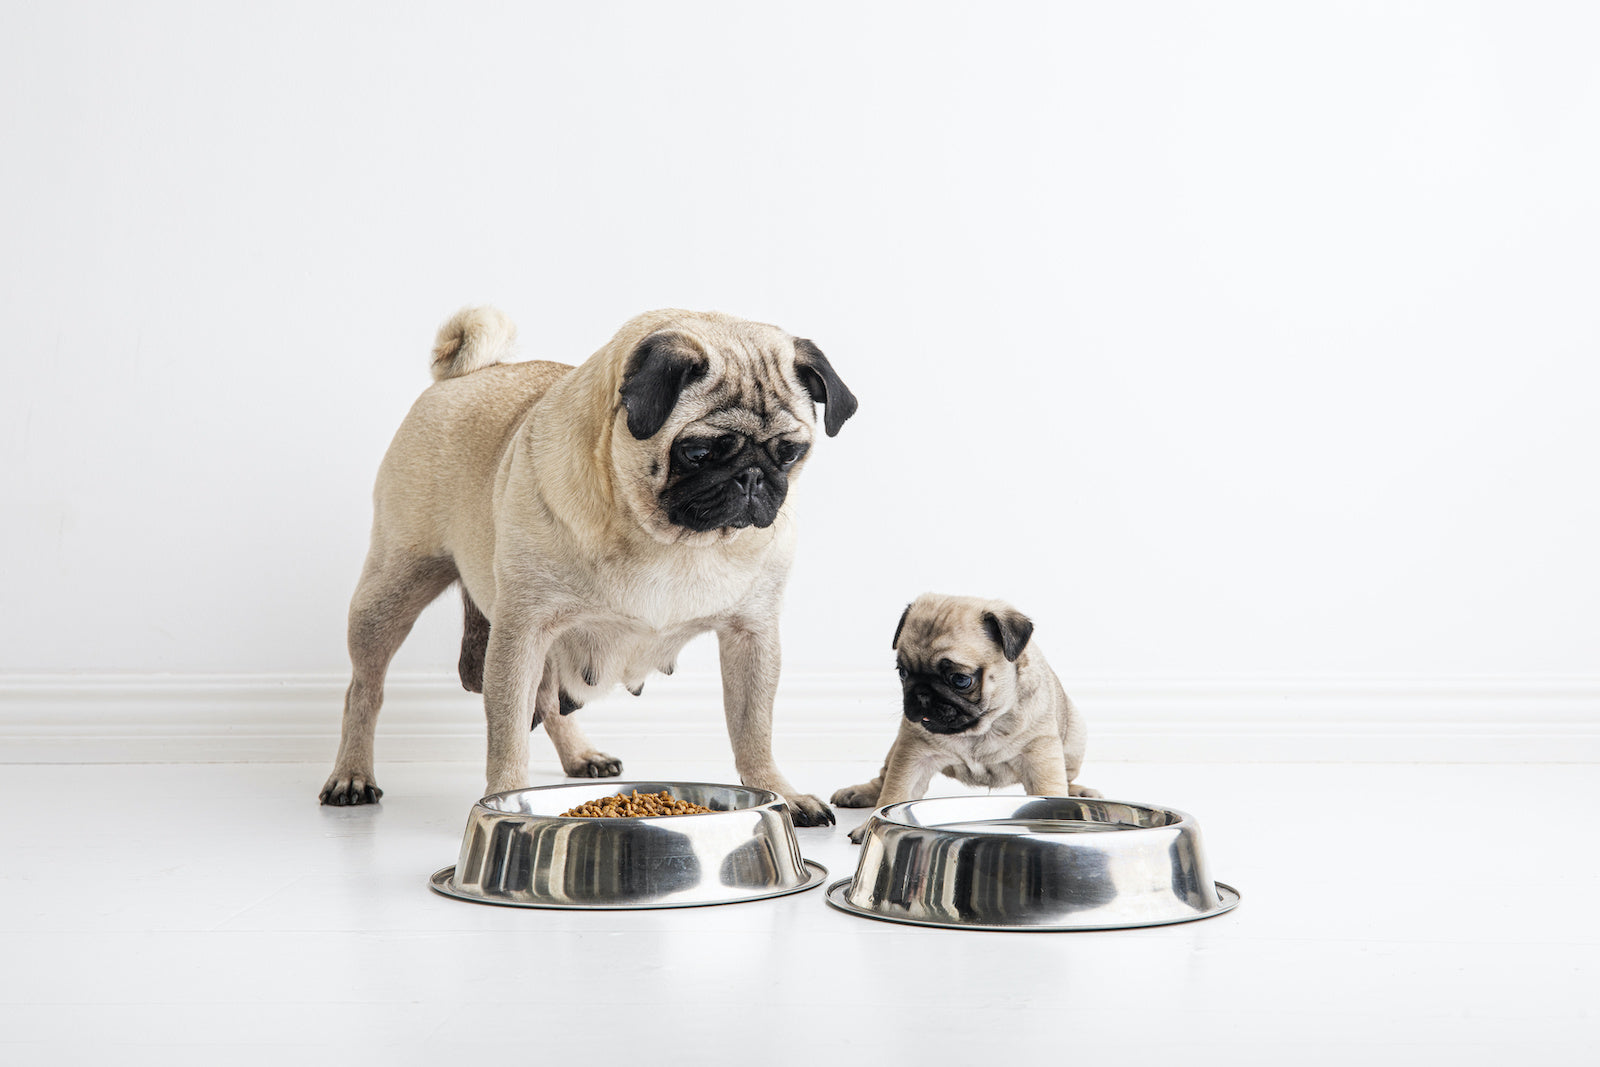 Dog food for allergies: A pug mom and puppy stand in front of dog food bowls